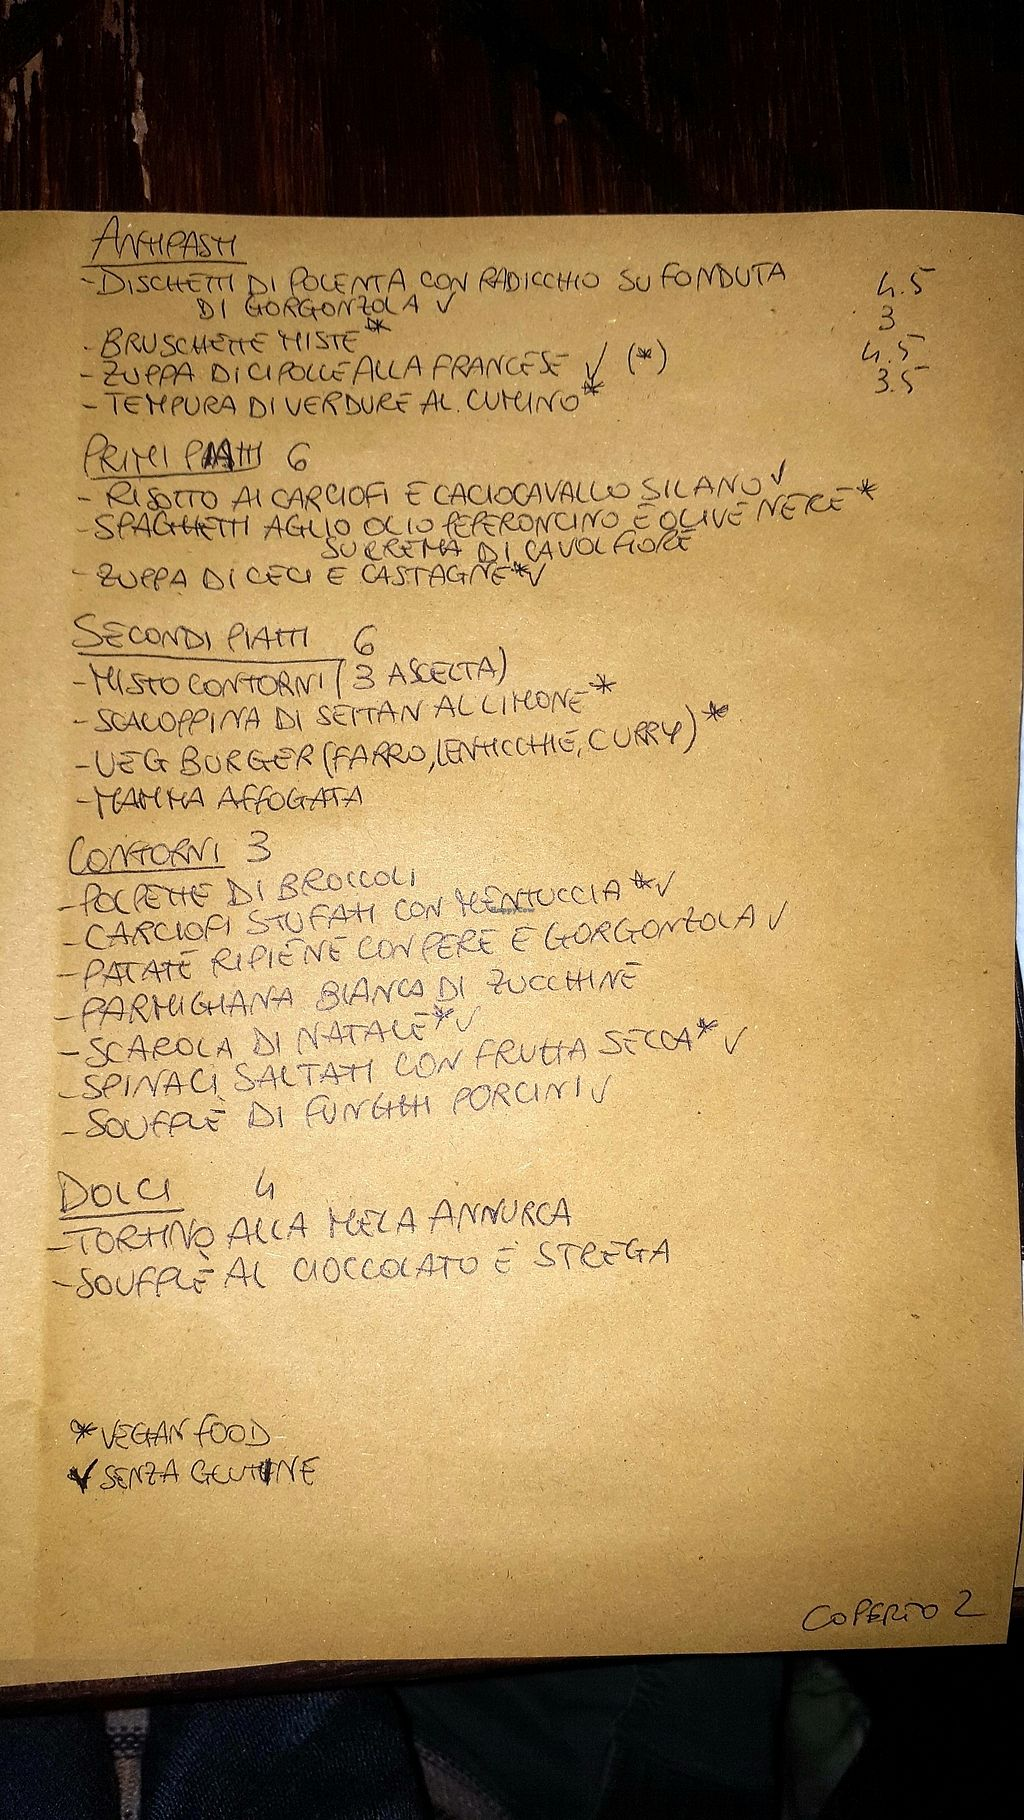 """Photo of Terra Ristorante Vegetariano  by <a href=""""/members/profile/spunkiVeg"""">spunkiVeg</a> <br/>Chef custom labeled the menu <br/> December 20, 2017  - <a href='/contact/abuse/image/31654/337481'>Report</a>"""